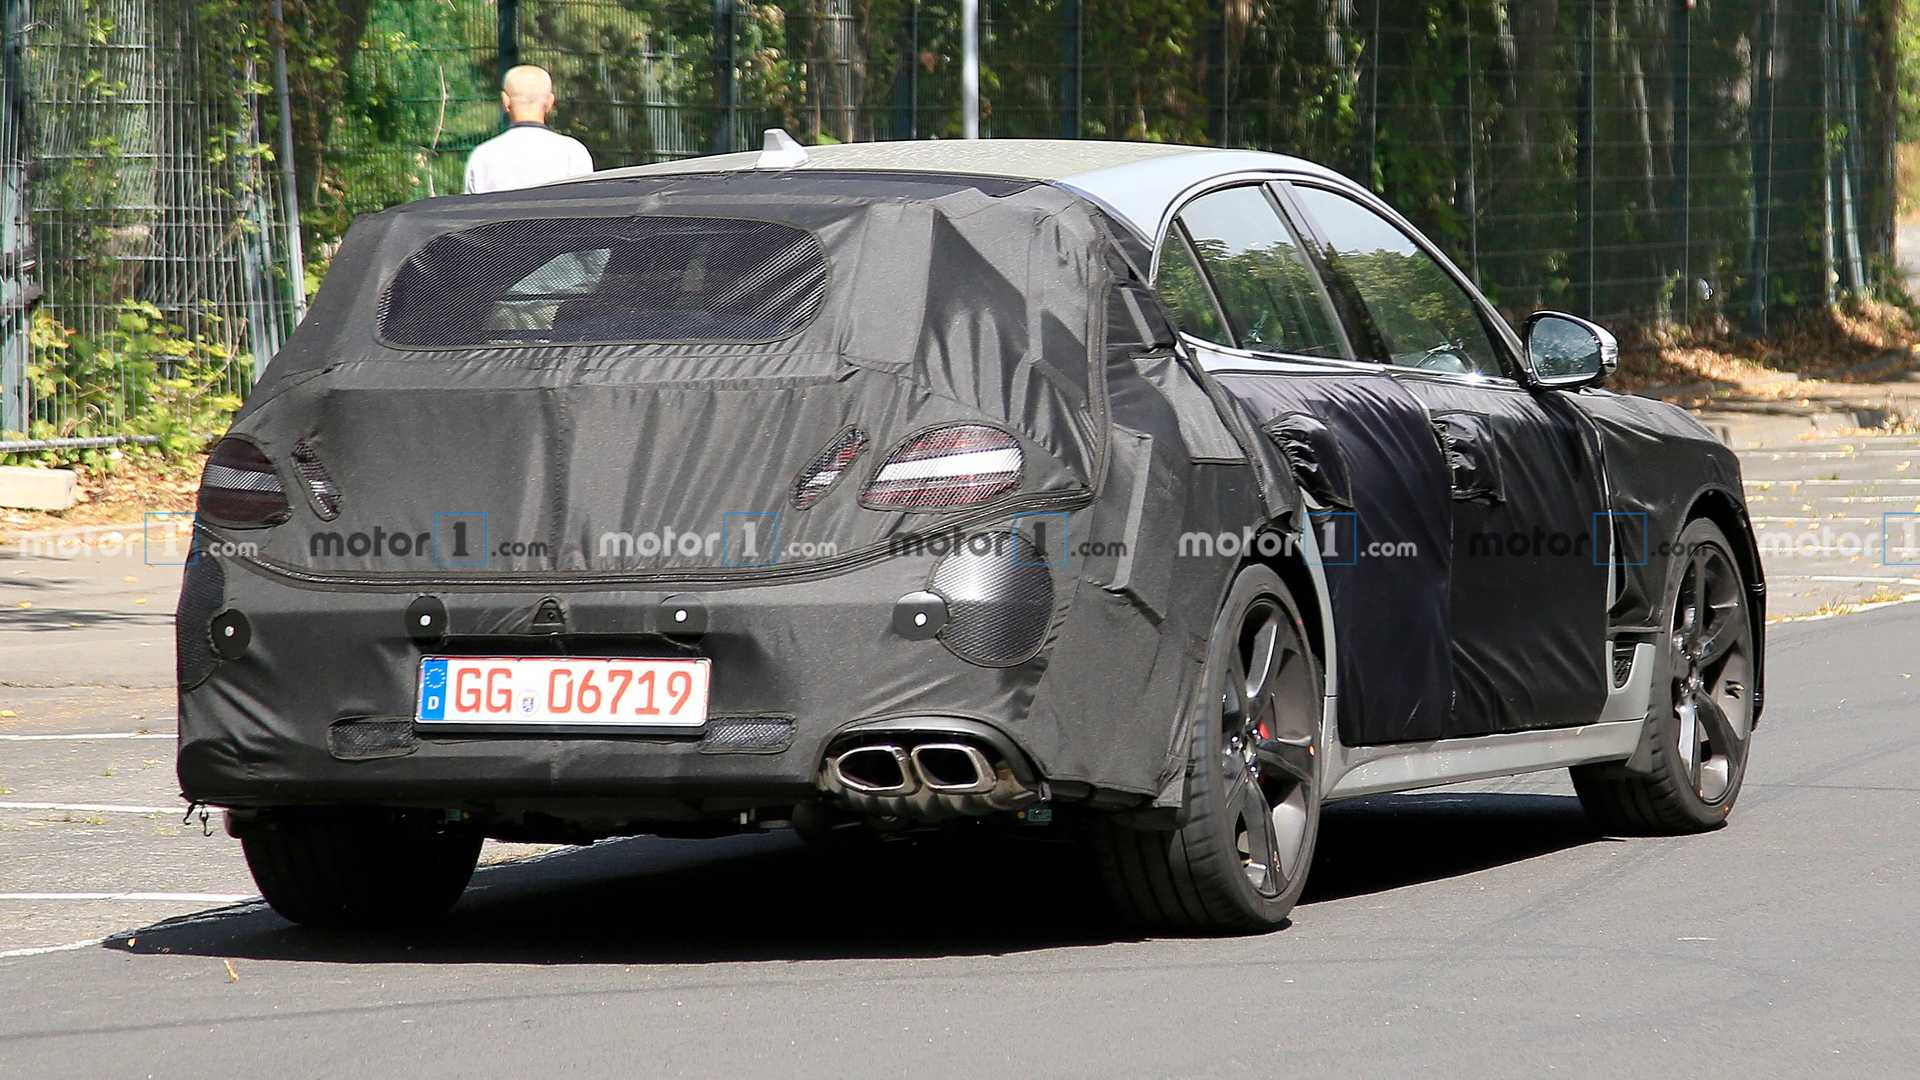 2021 - [Genesis] G70 Shooting Brake Genesis-g70-shooting-brake-wagon-spied-camouflaged-rear